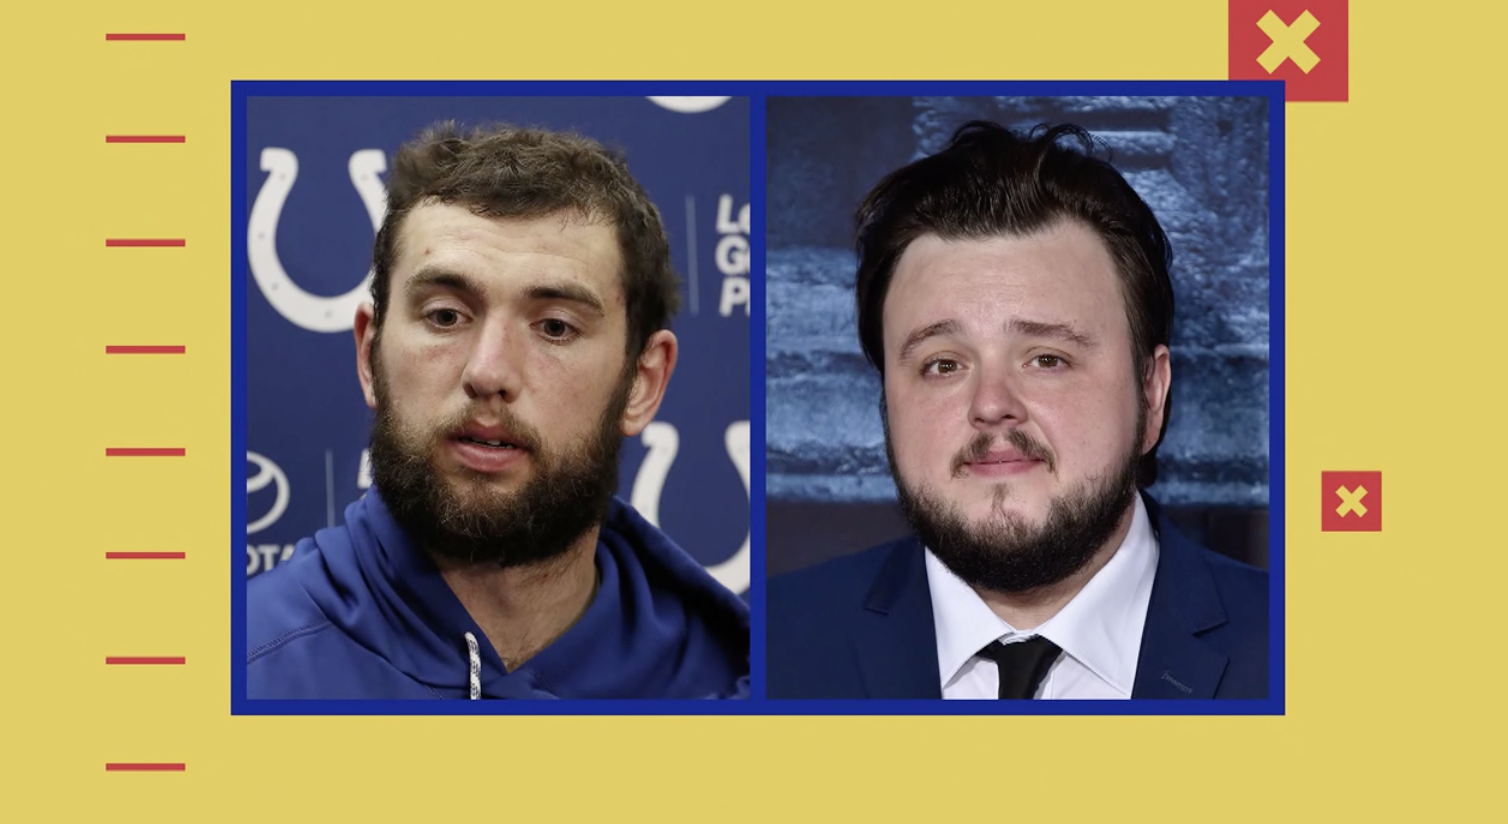 [VIDEO] Andrew Luck compared to a 'Game of Thrones' character